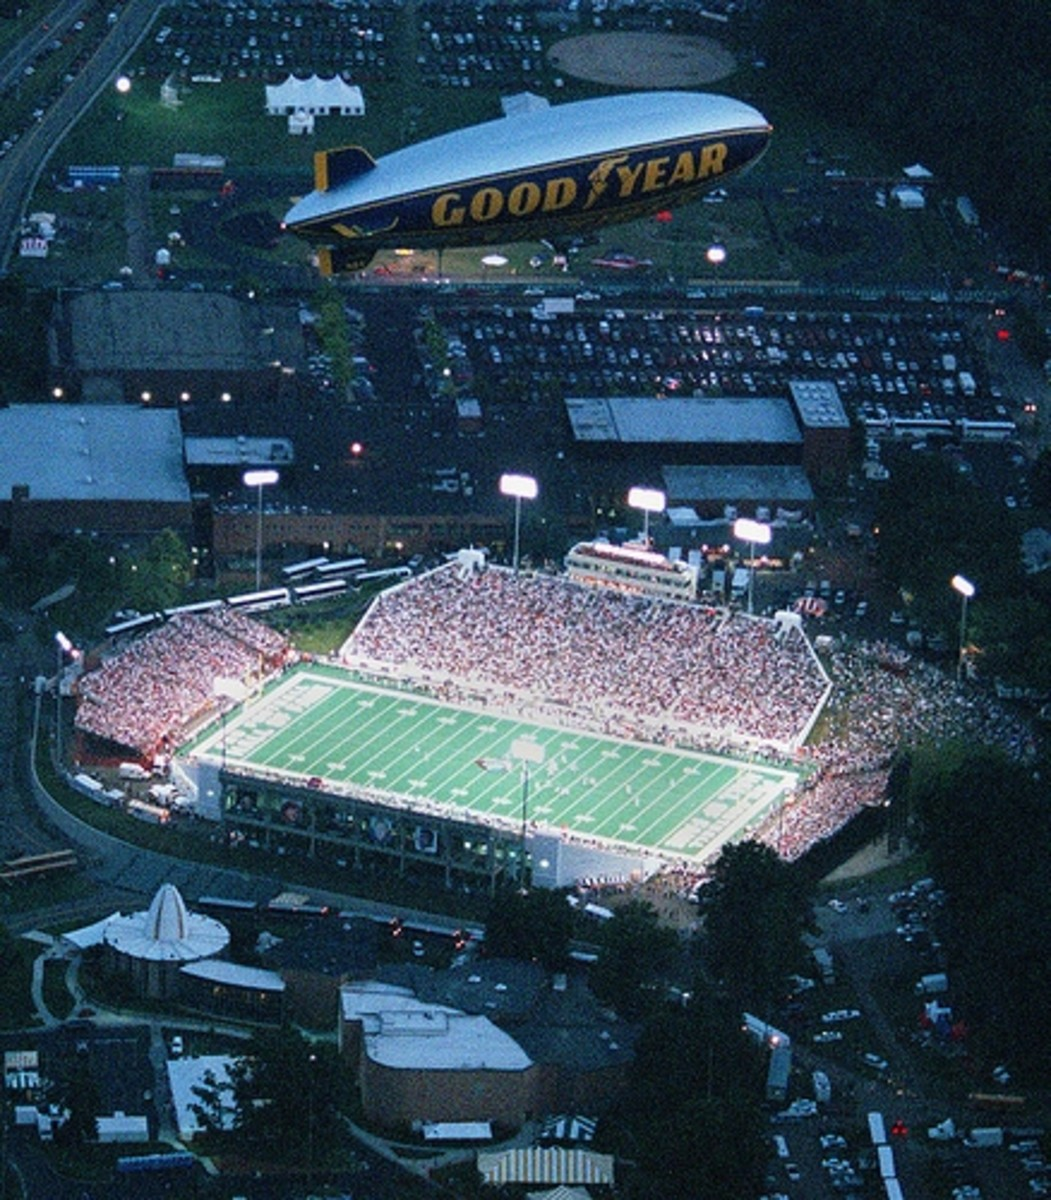 The Browns' first preseason game was played in Canton in 1999, their first game after their return to Cleveland.